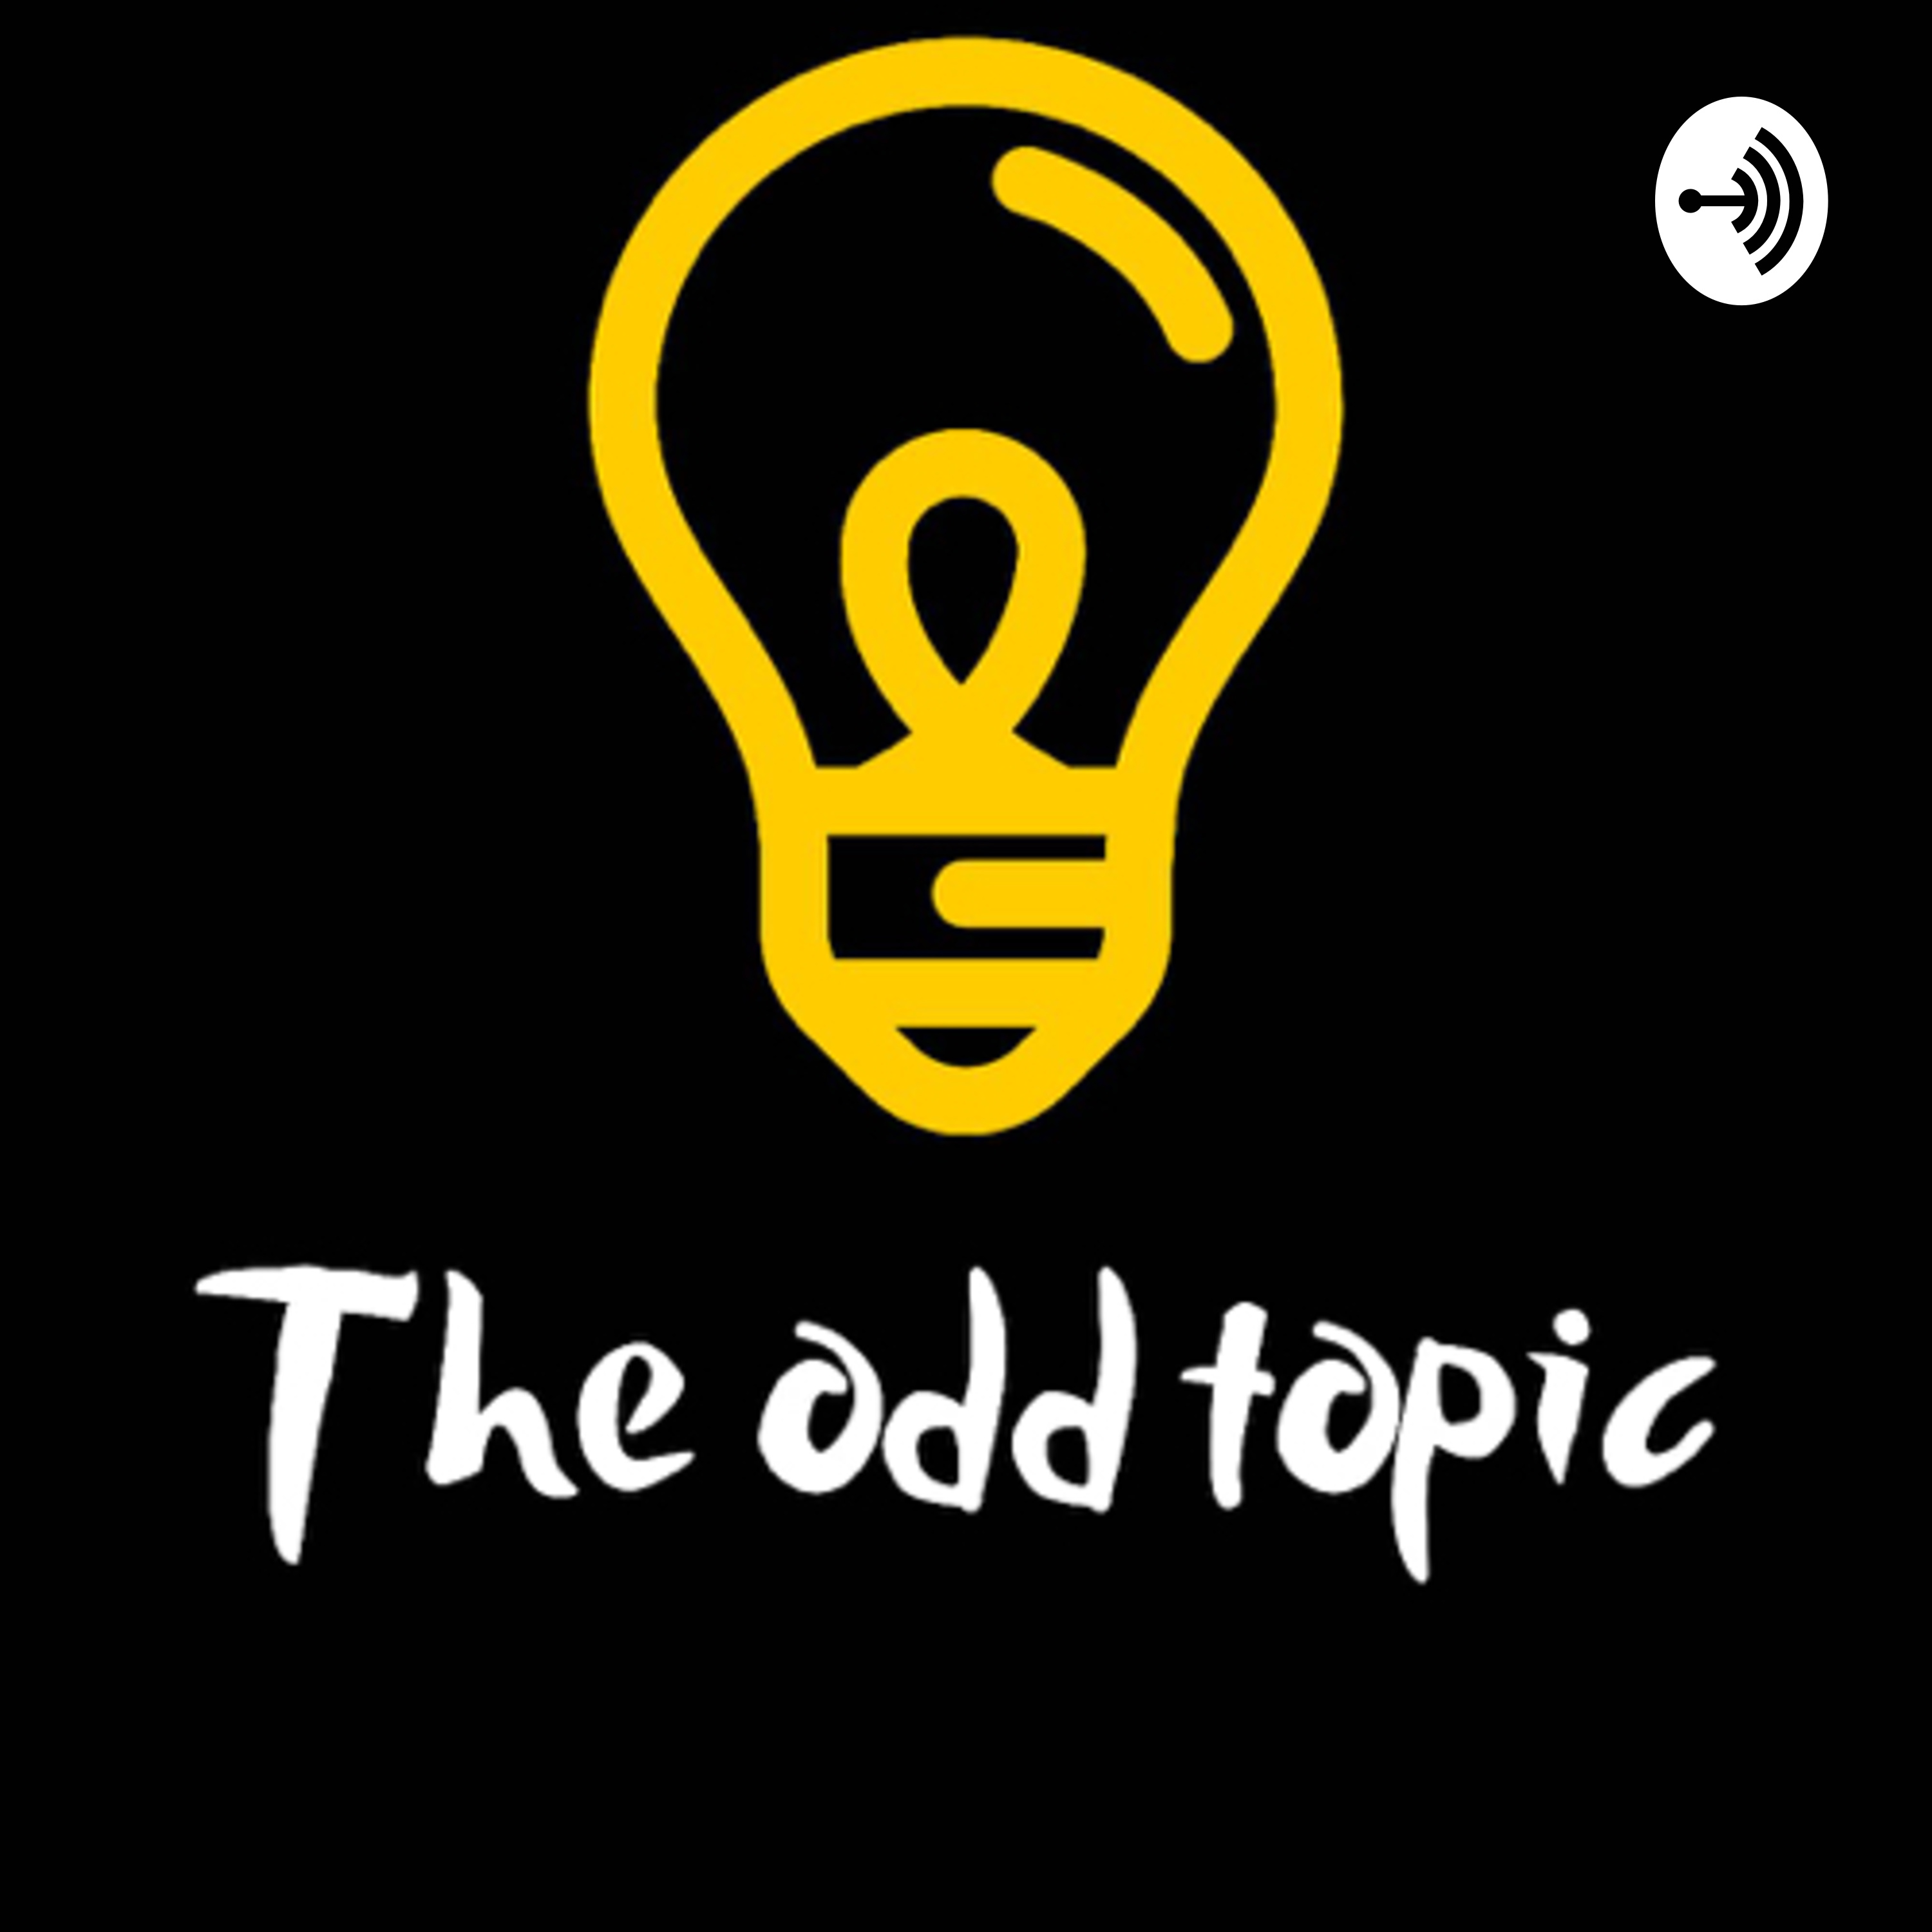 The odd topic podcast